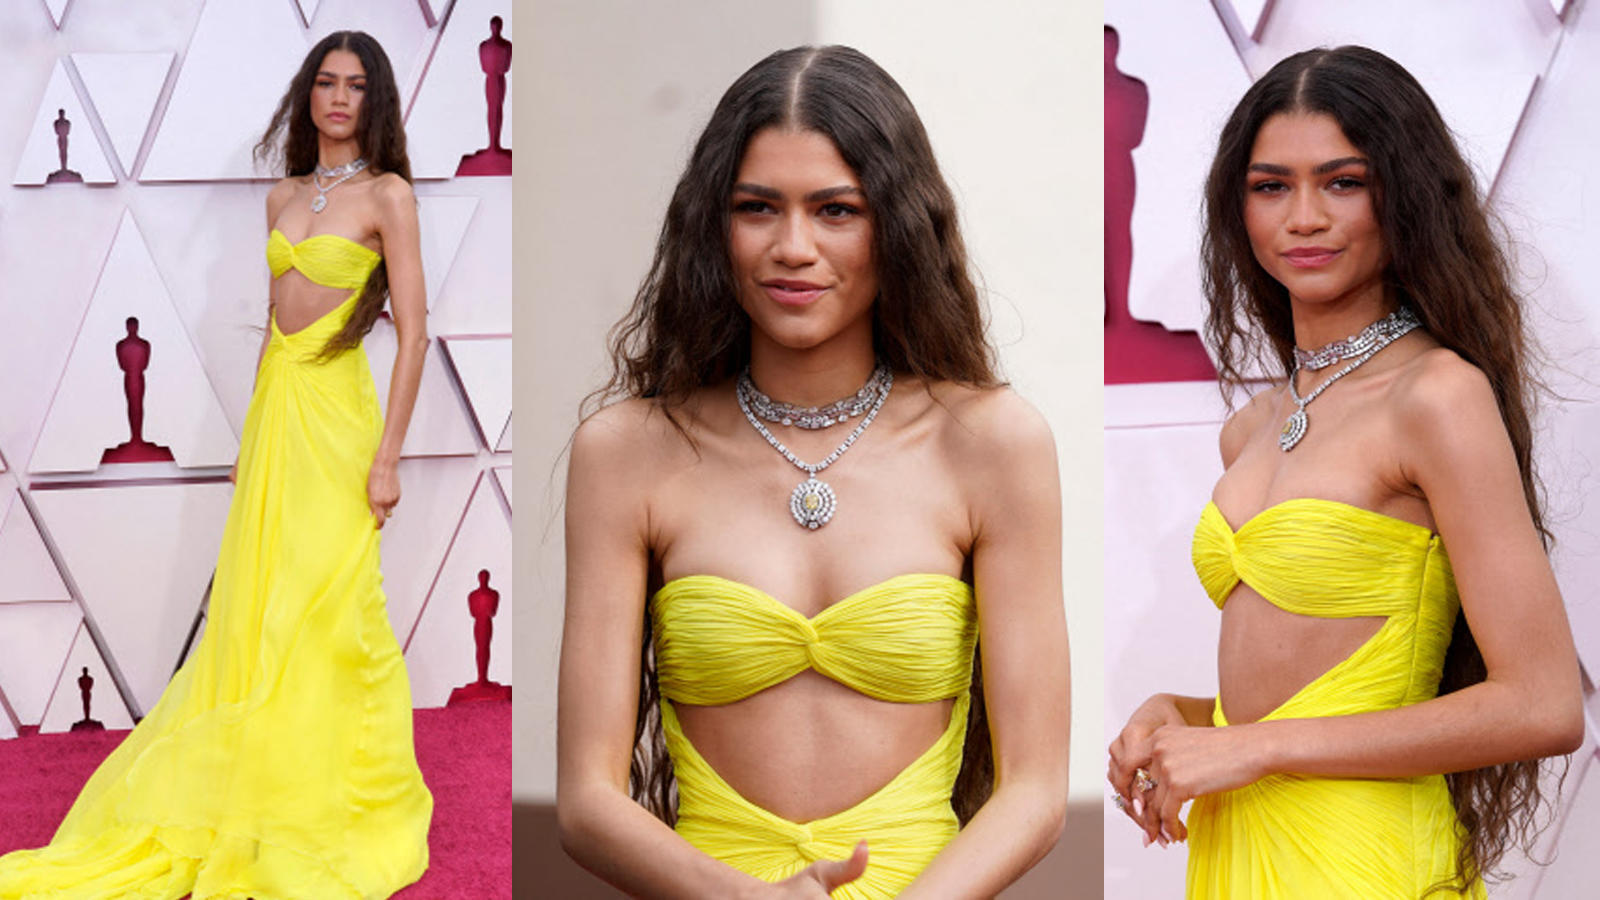 Oscars 2021: Zendaya stuns everyone with her appearance in 6 million worth of diamonds | English Movie News – Hollywood – Times of India